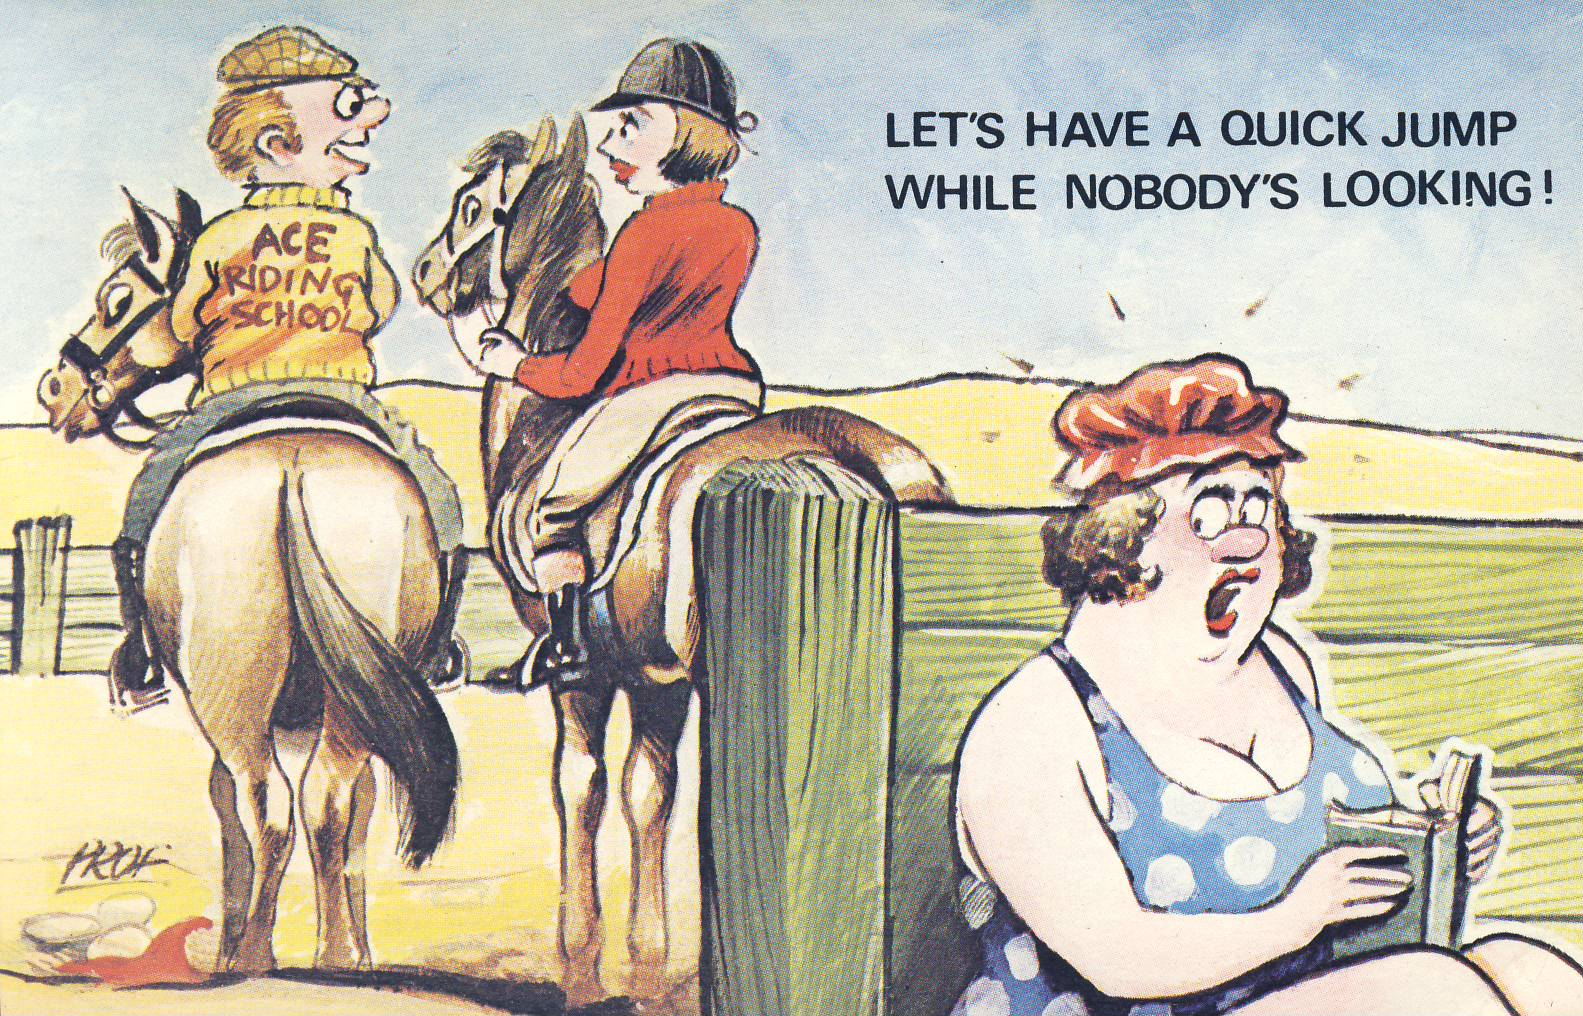 ACE Riding School Let's Have a Quick Jump While Nobody's Looking! Saucy Humour Old Postcard refP9 Cardtoon Series. Pre-owned unused condition.